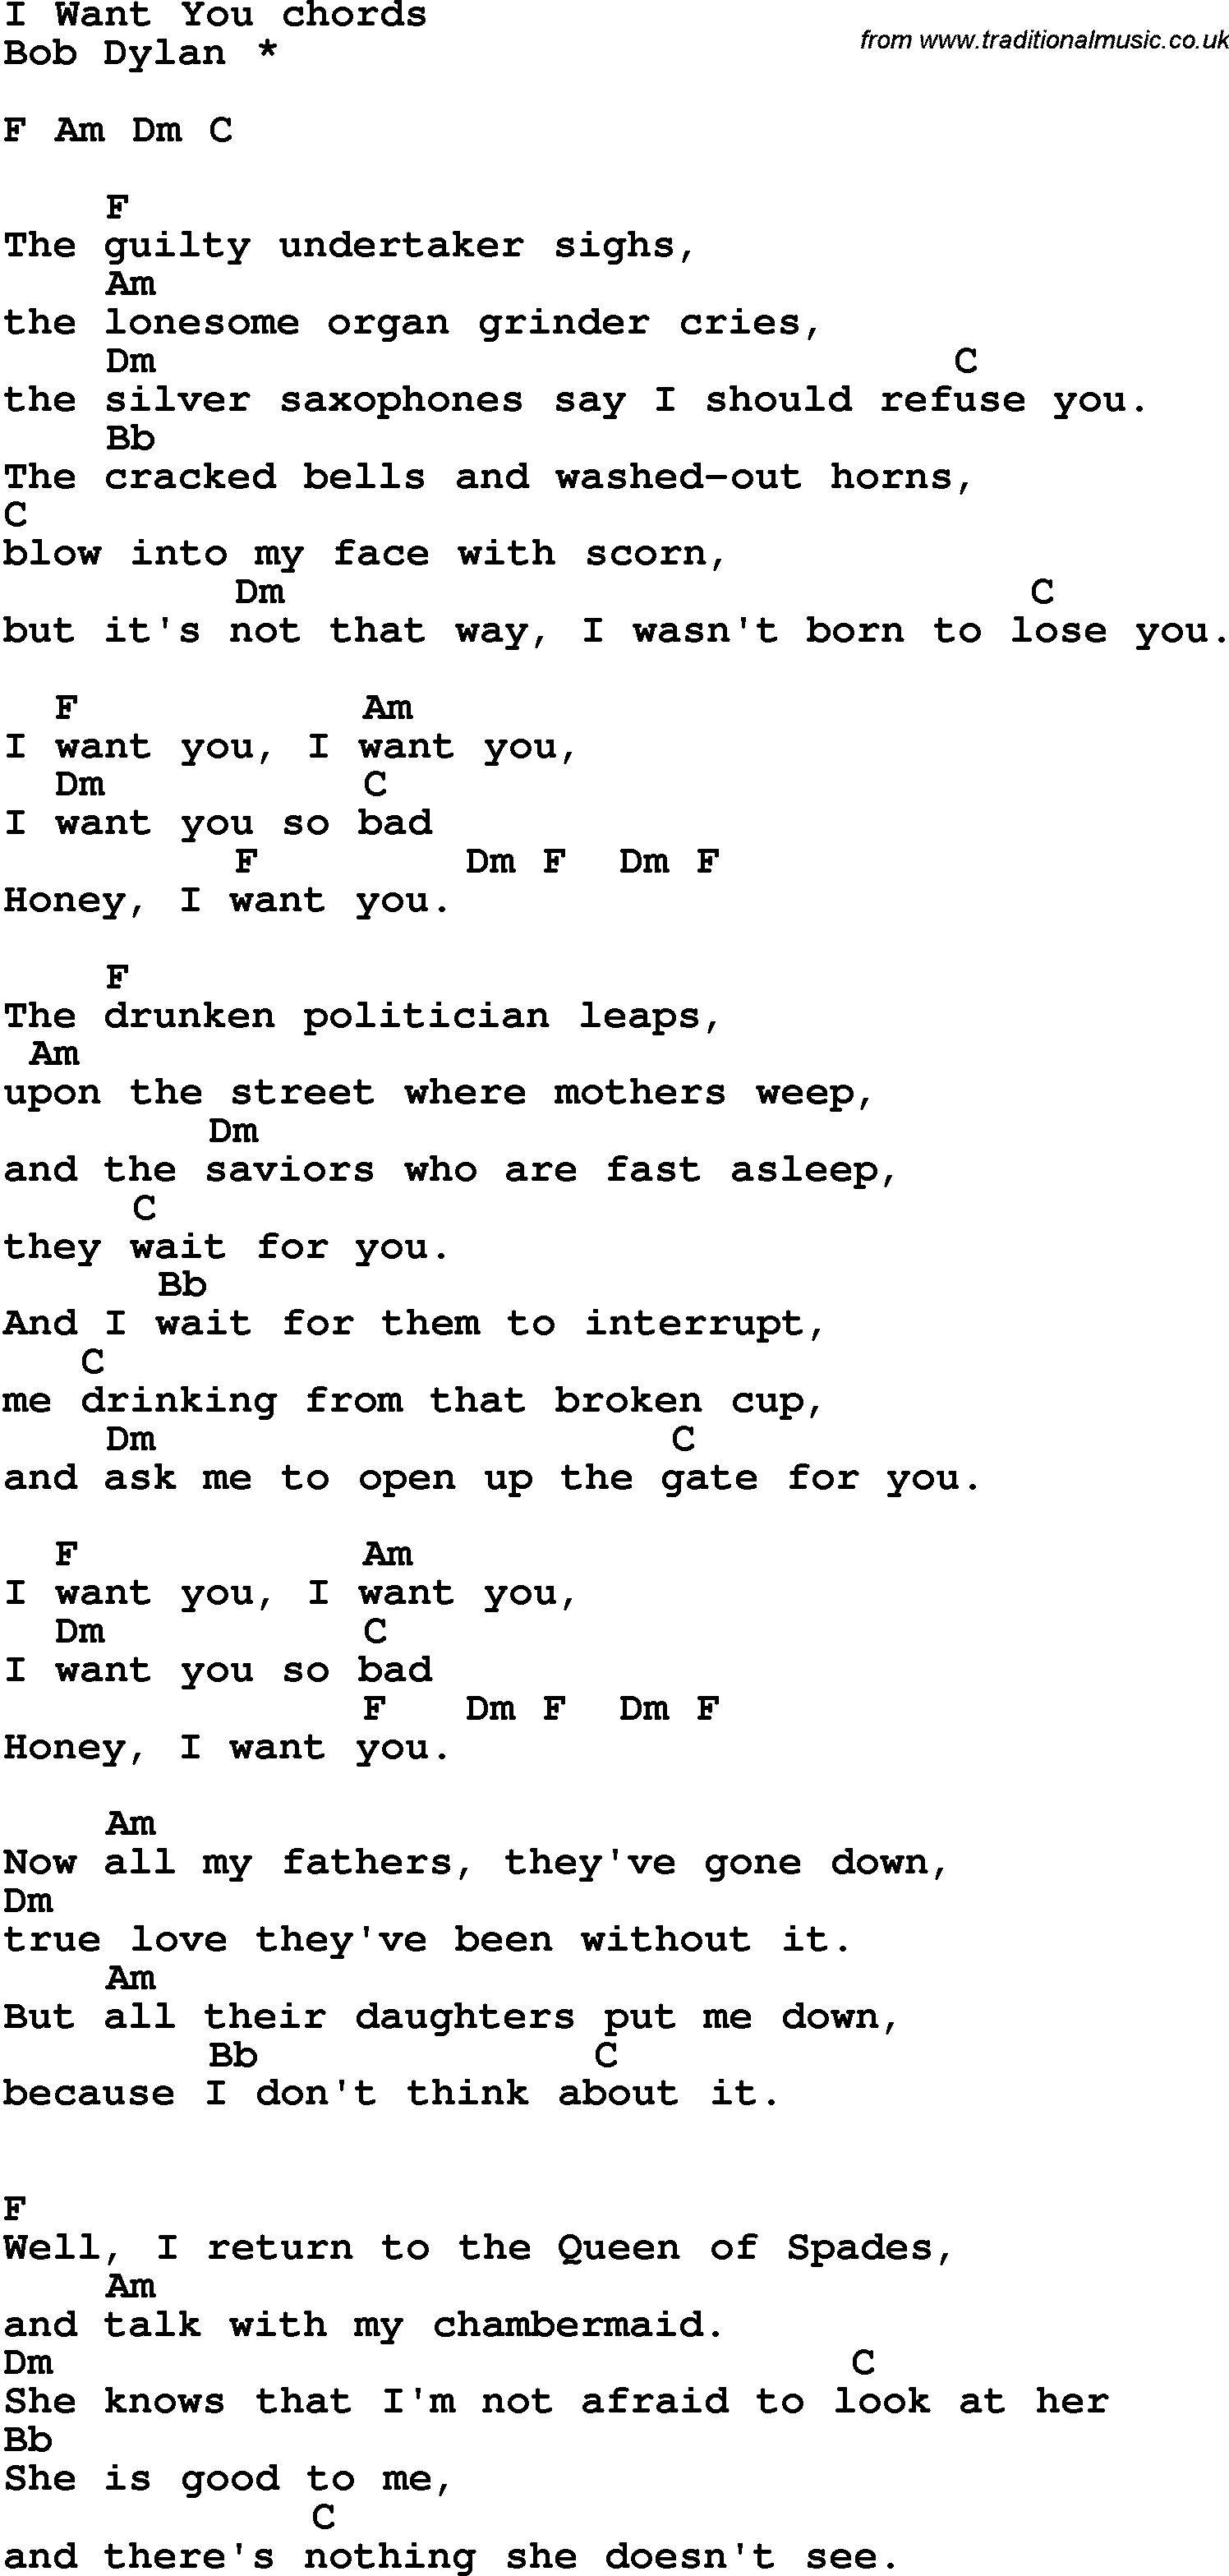 Song Lyrics With Guitar Chords For I Want You